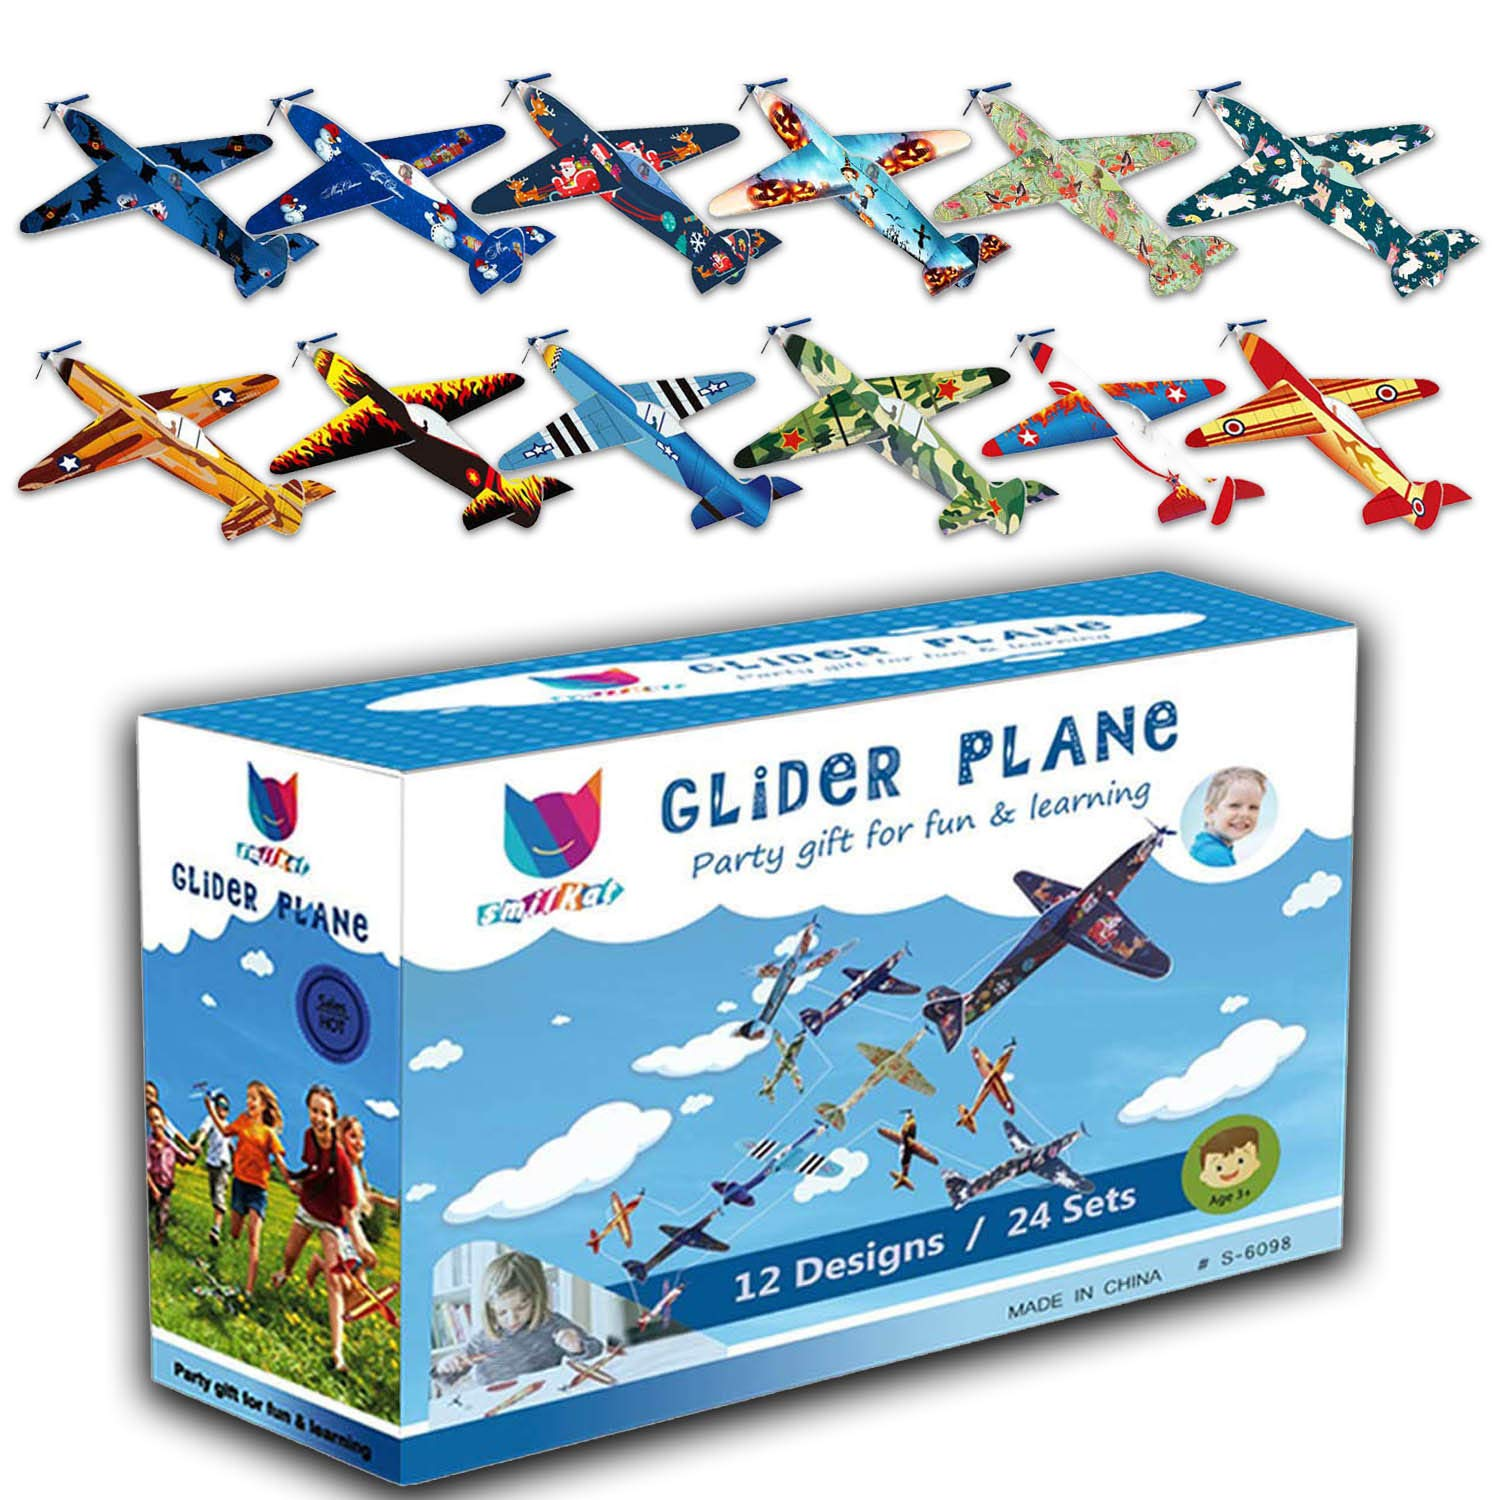 Smilkat Glider Plane Party Favors - 12 New Models 24 Pack 8 inch Flying Styrofoam Airplanes, Easy Assembly, Kids Toy for Birthday Party, School Classroom Rewards Carnival Prizes by Smilkat